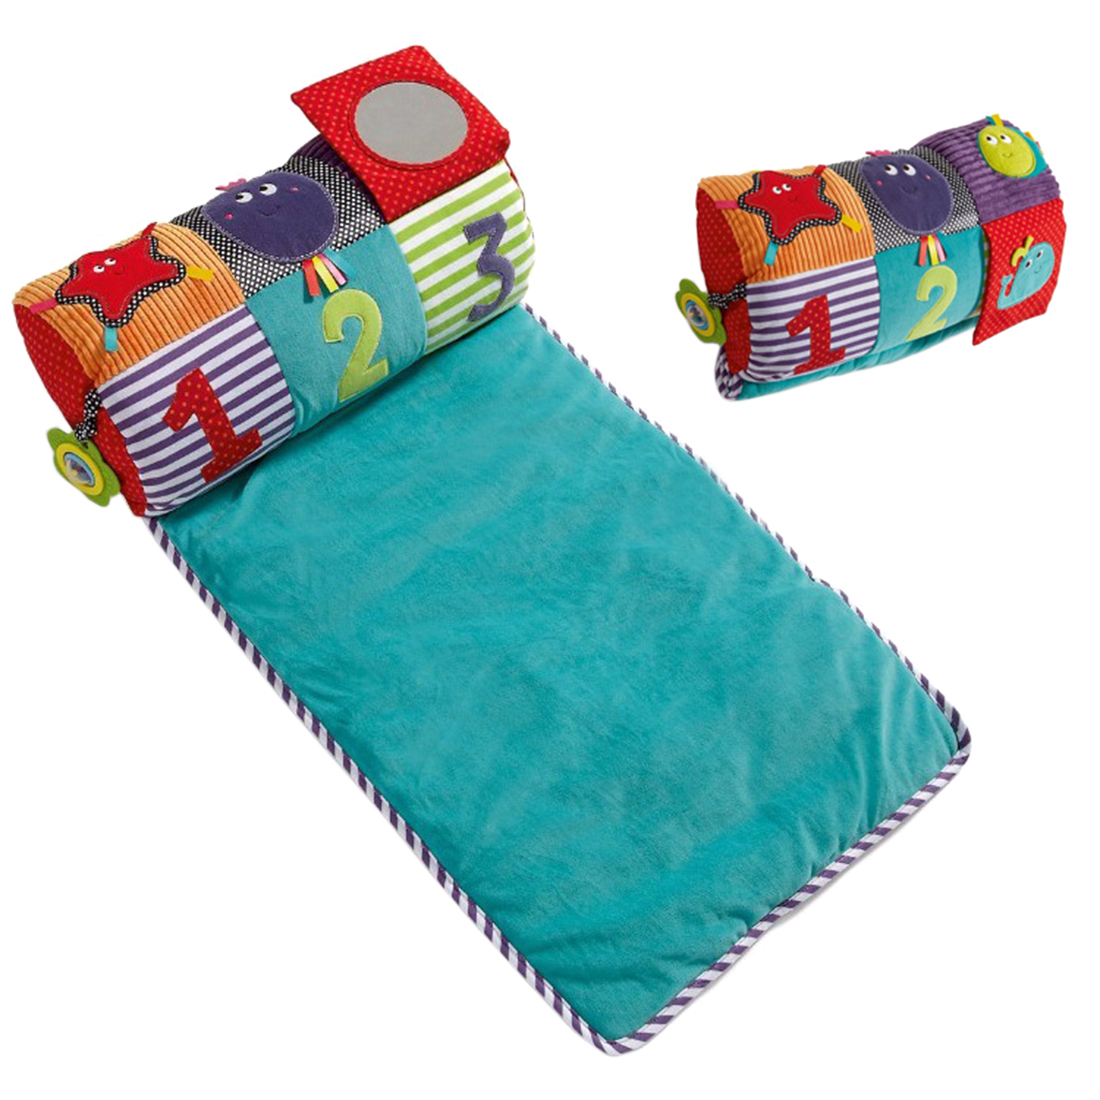 Baby Infant Tummy Time Crawling Mat Play Carpet Roller Pillow Baby Gym Crawling Activity Mat Education Gym Playmat Kids Fitness